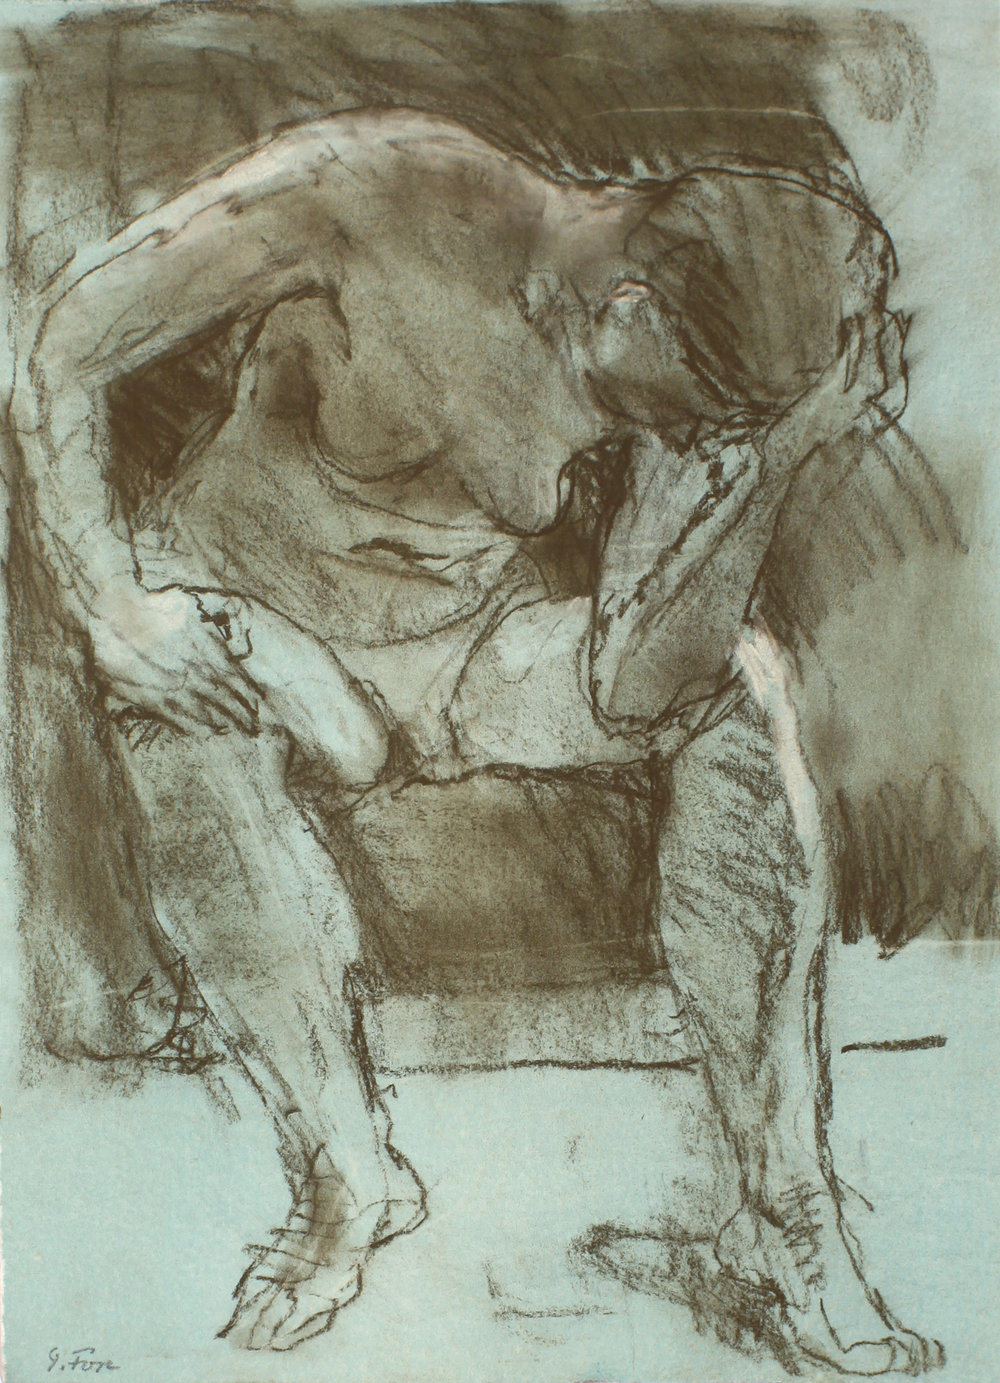 1994_Figure_with_Head_in_Hand_pastel_on_green_painted_paper_15x11in_WPF523.jpg